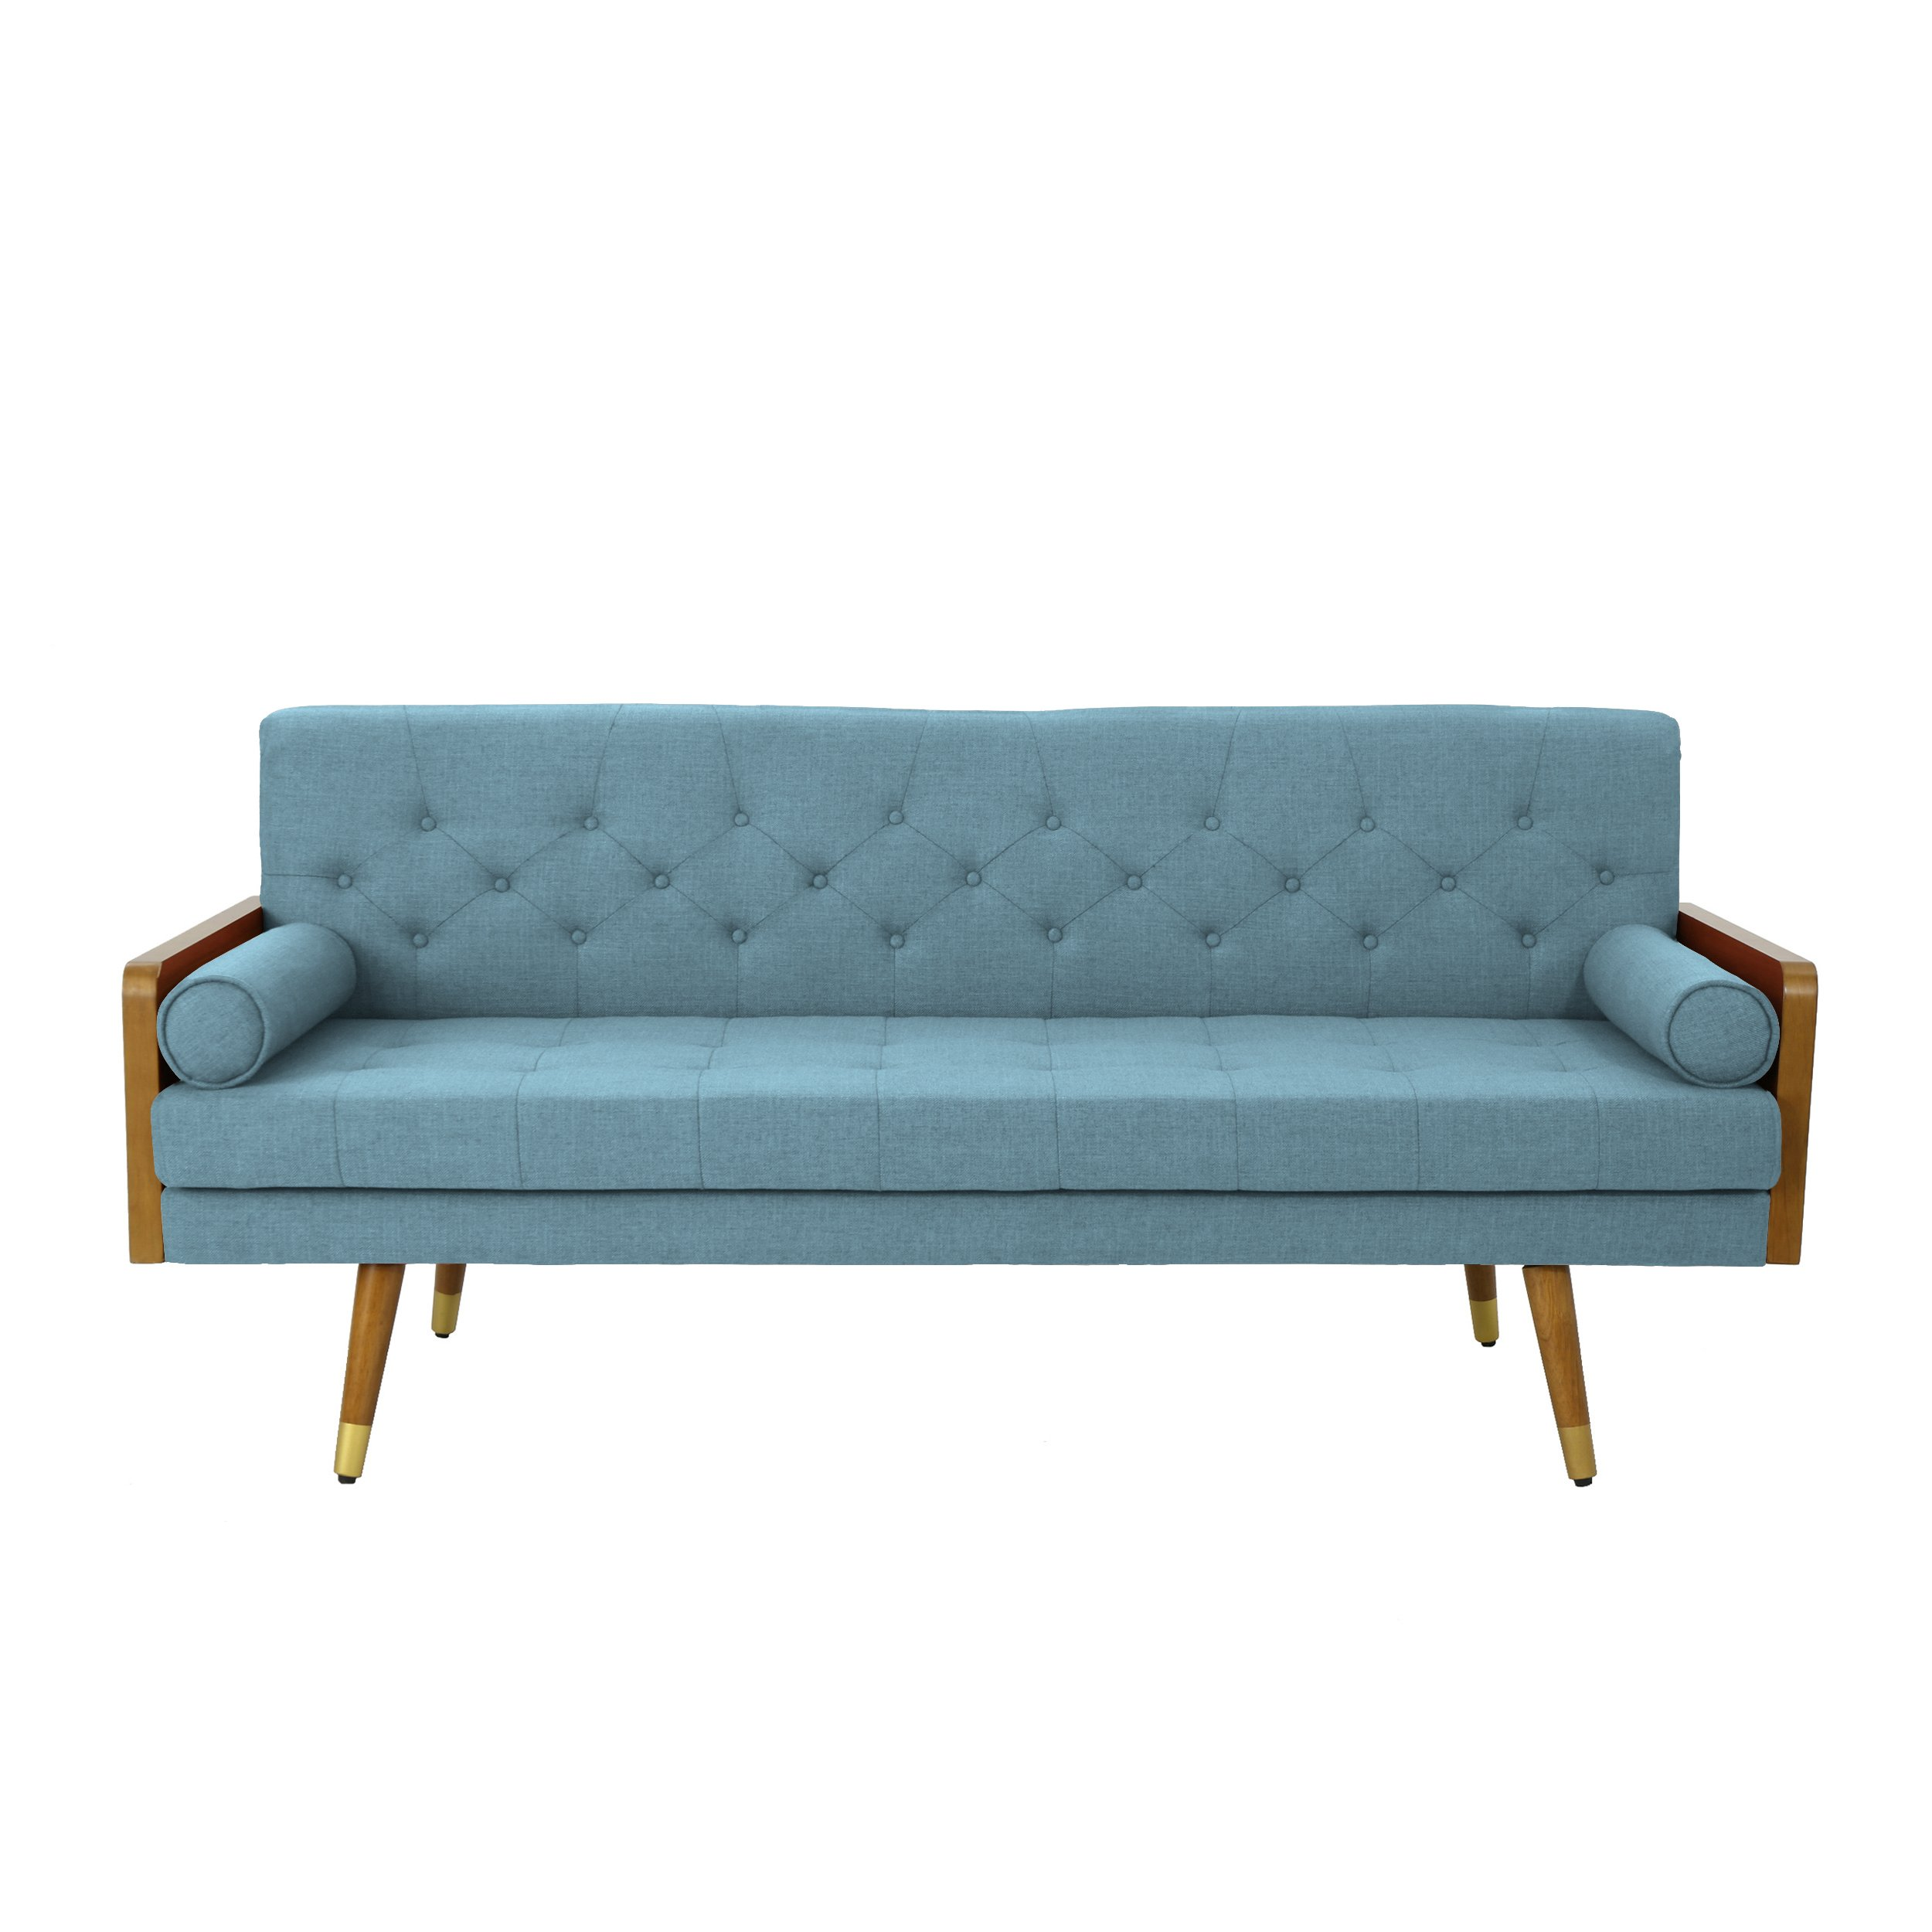 Christopher Knight Home Aidan Mid Century Modern Tufted Fabric Sofa, Blue by Christopher Knight Home